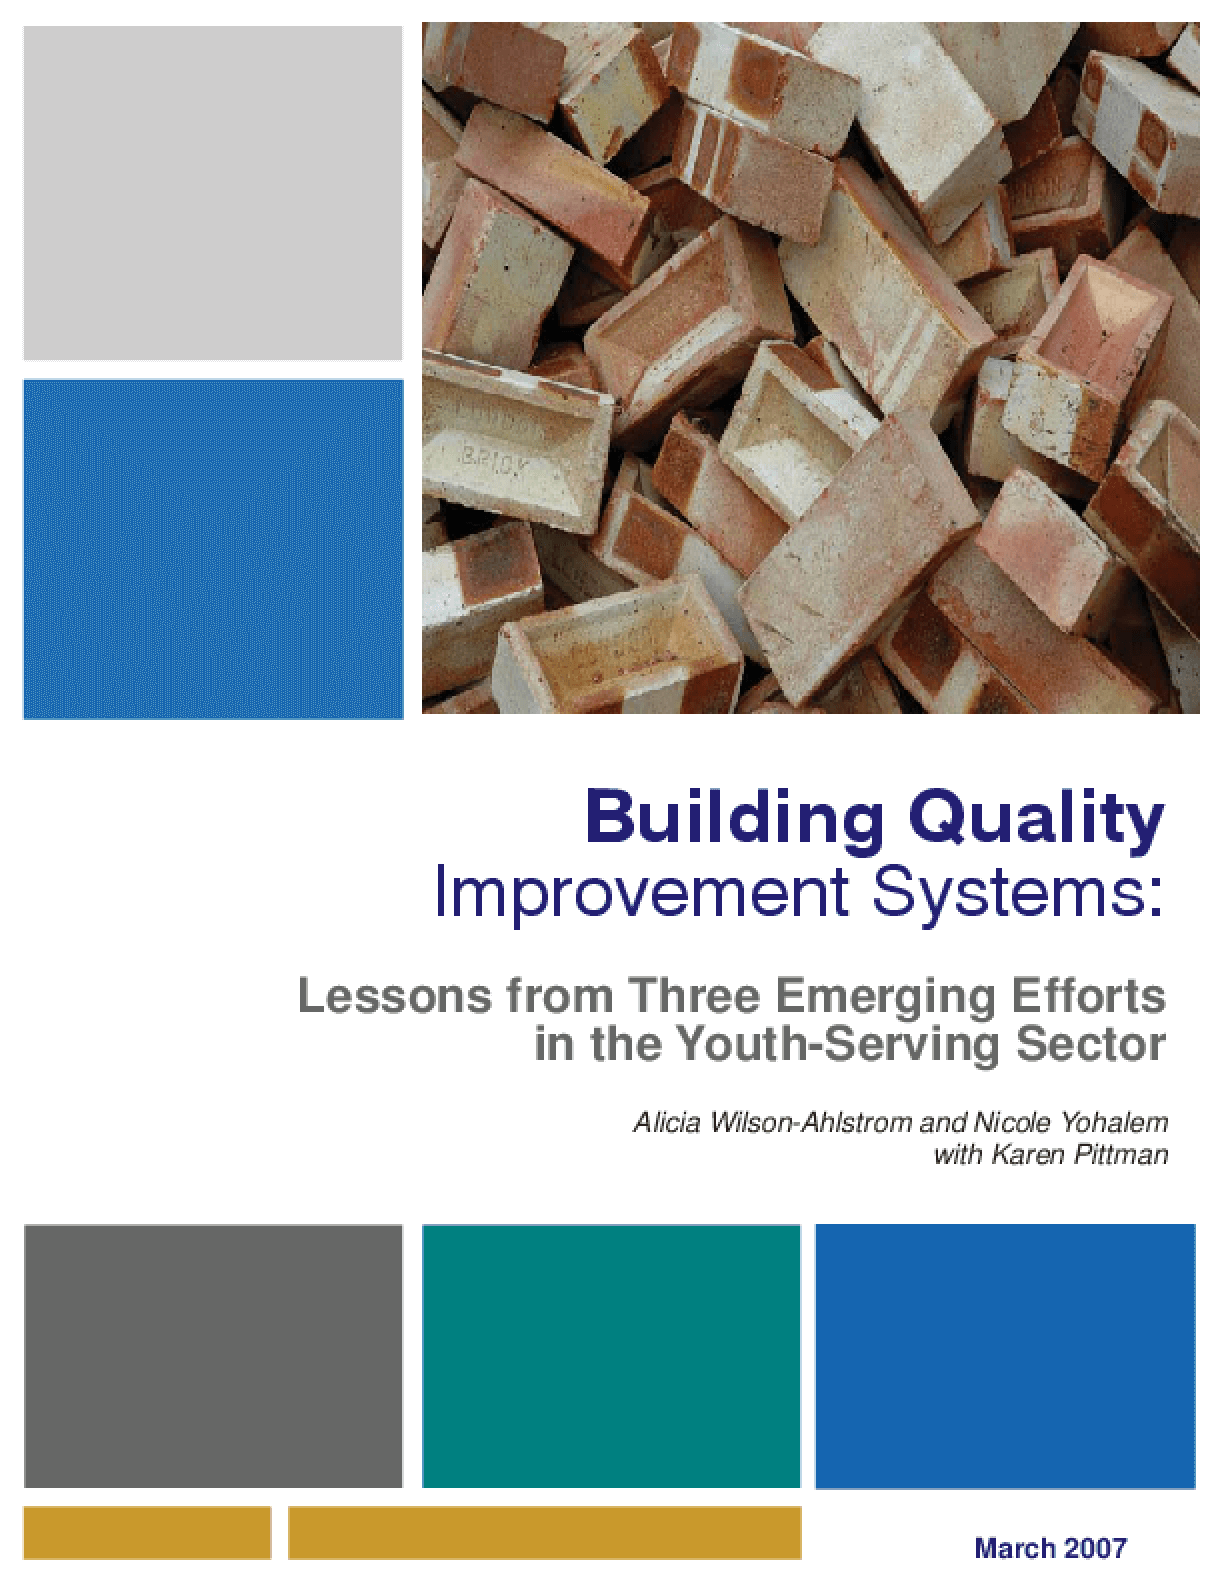 Building Quality Improvement Systems: Lessons from Three Emerging Efforts in the Youth-Serving Sector